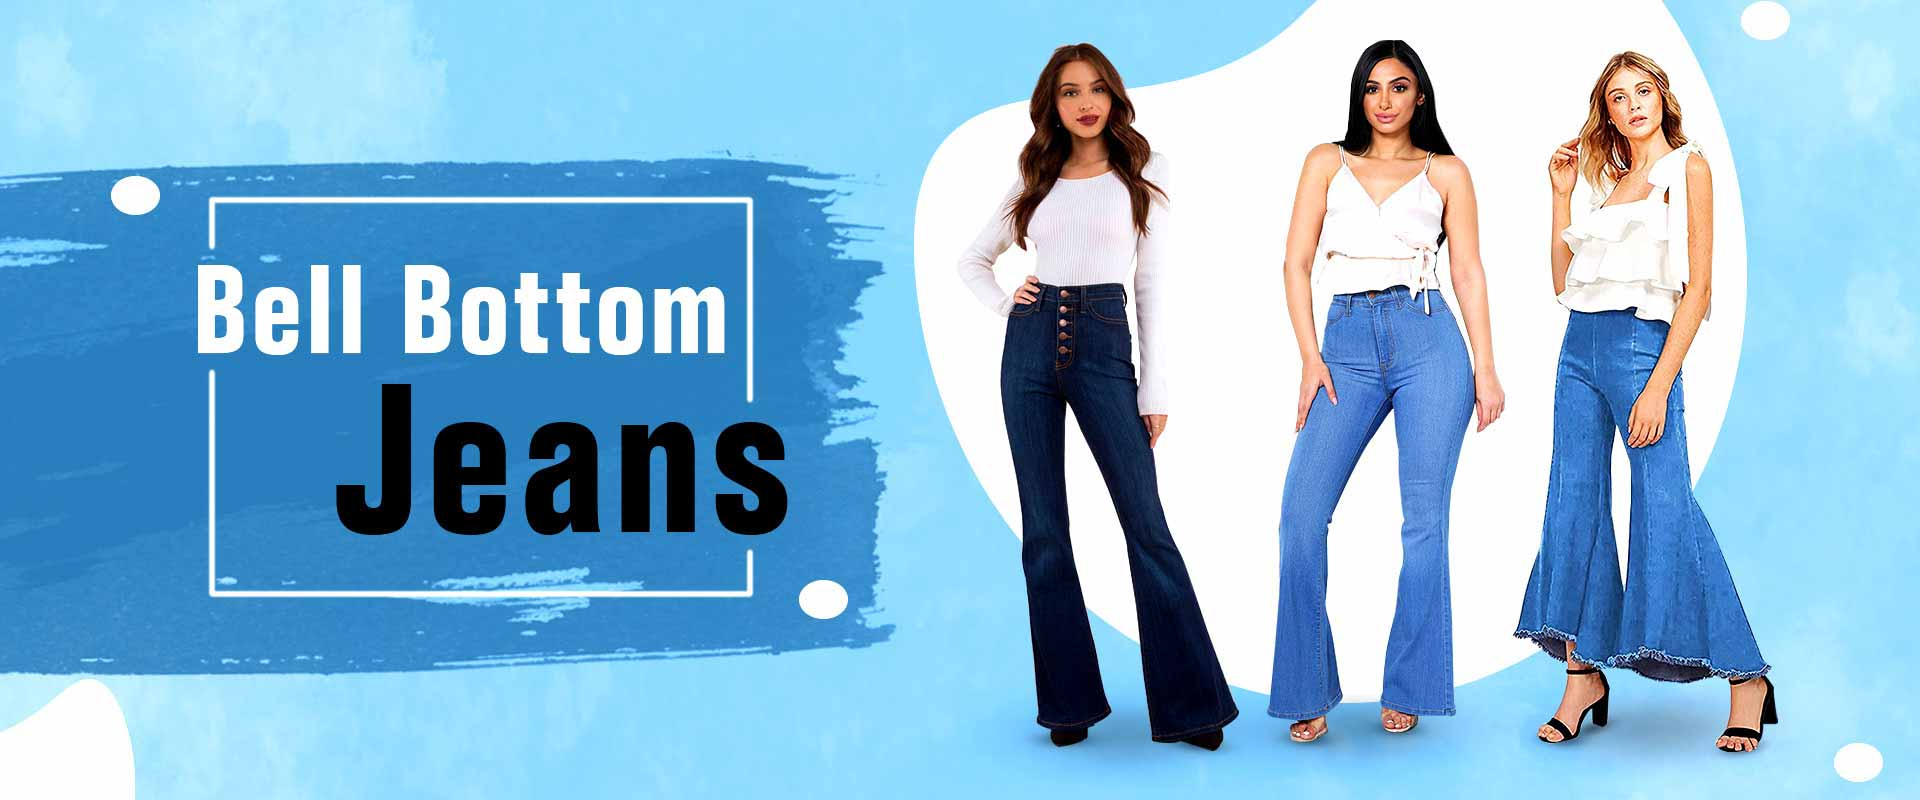 Bell Bottom Jeans Manufacturers